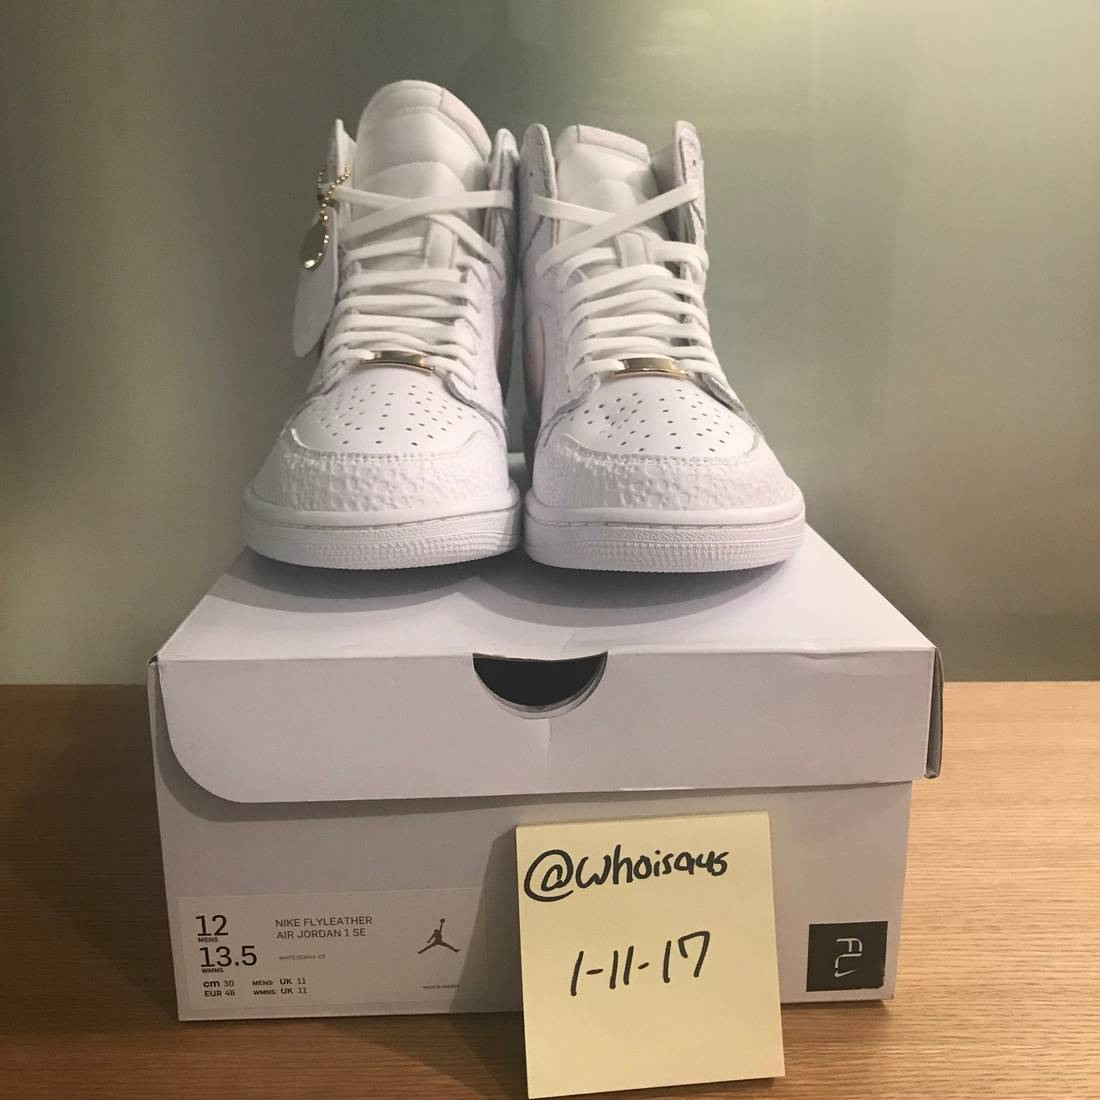 986d2e1571100 Jordan Brand Air Jordan 1 Size US 12 EU 45 - 2 . Nike Flyleather Air Force 1   Nike Tennis Classic Flyleather White Rose Gold . ...